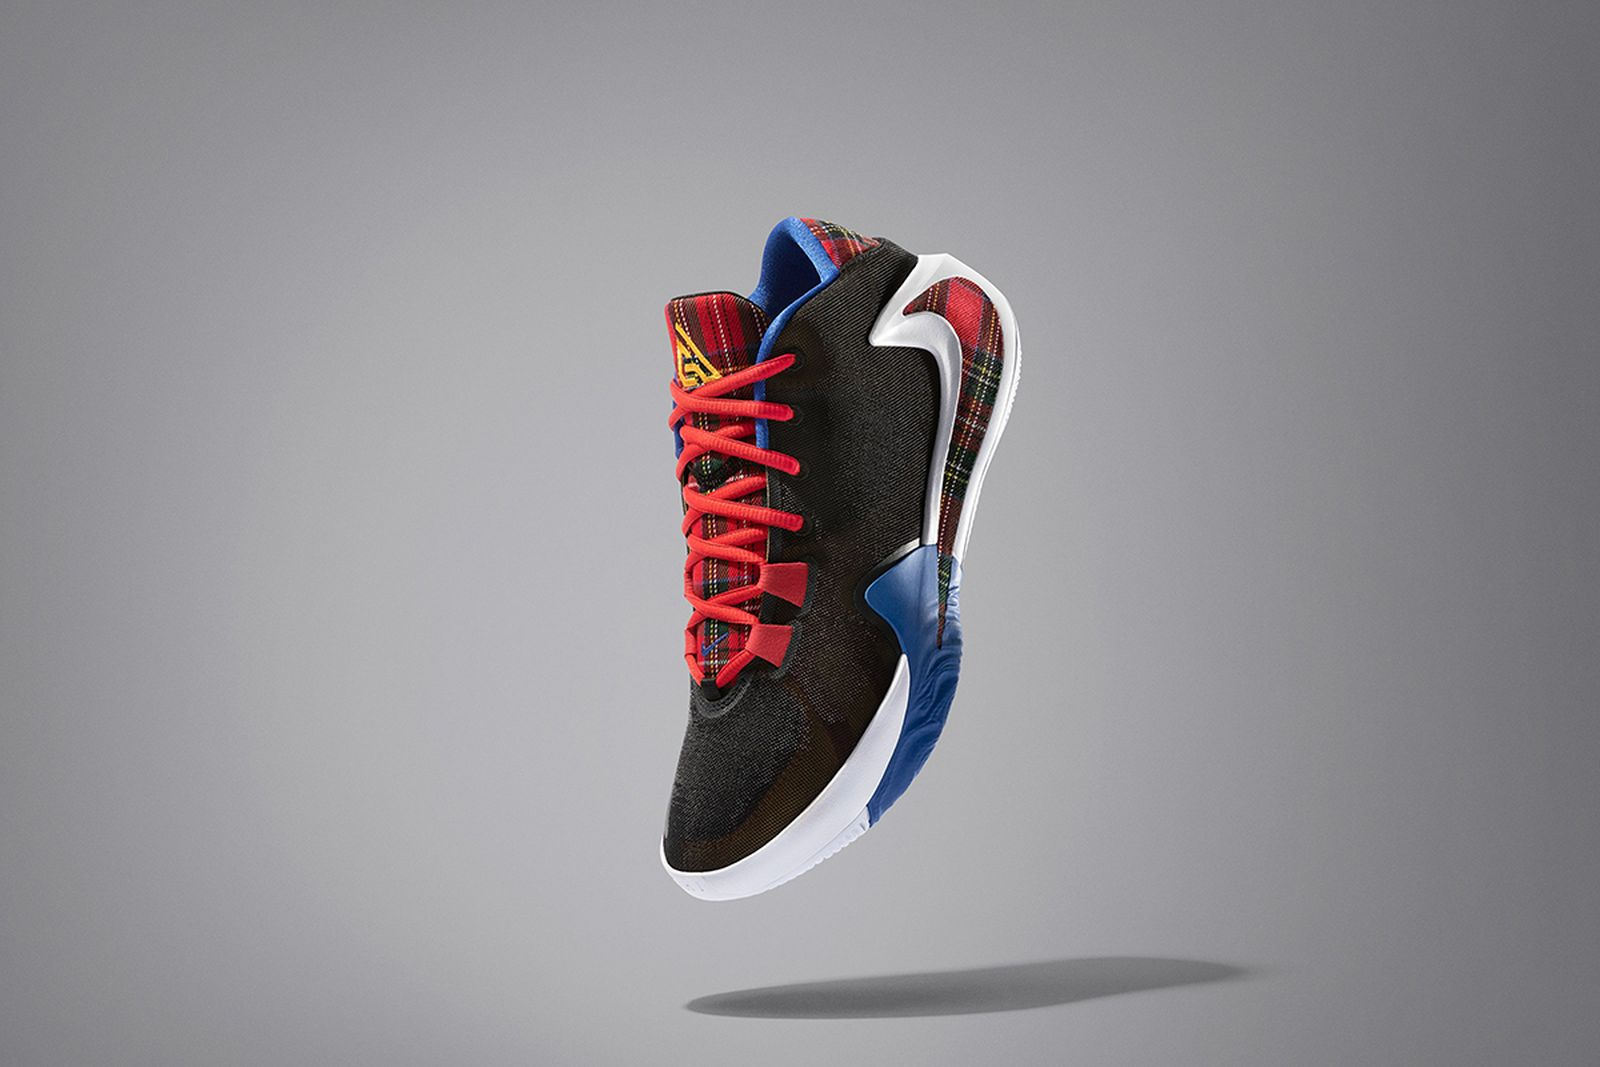 nike-nba-all-star-2020-collection-release-date-price-1-04